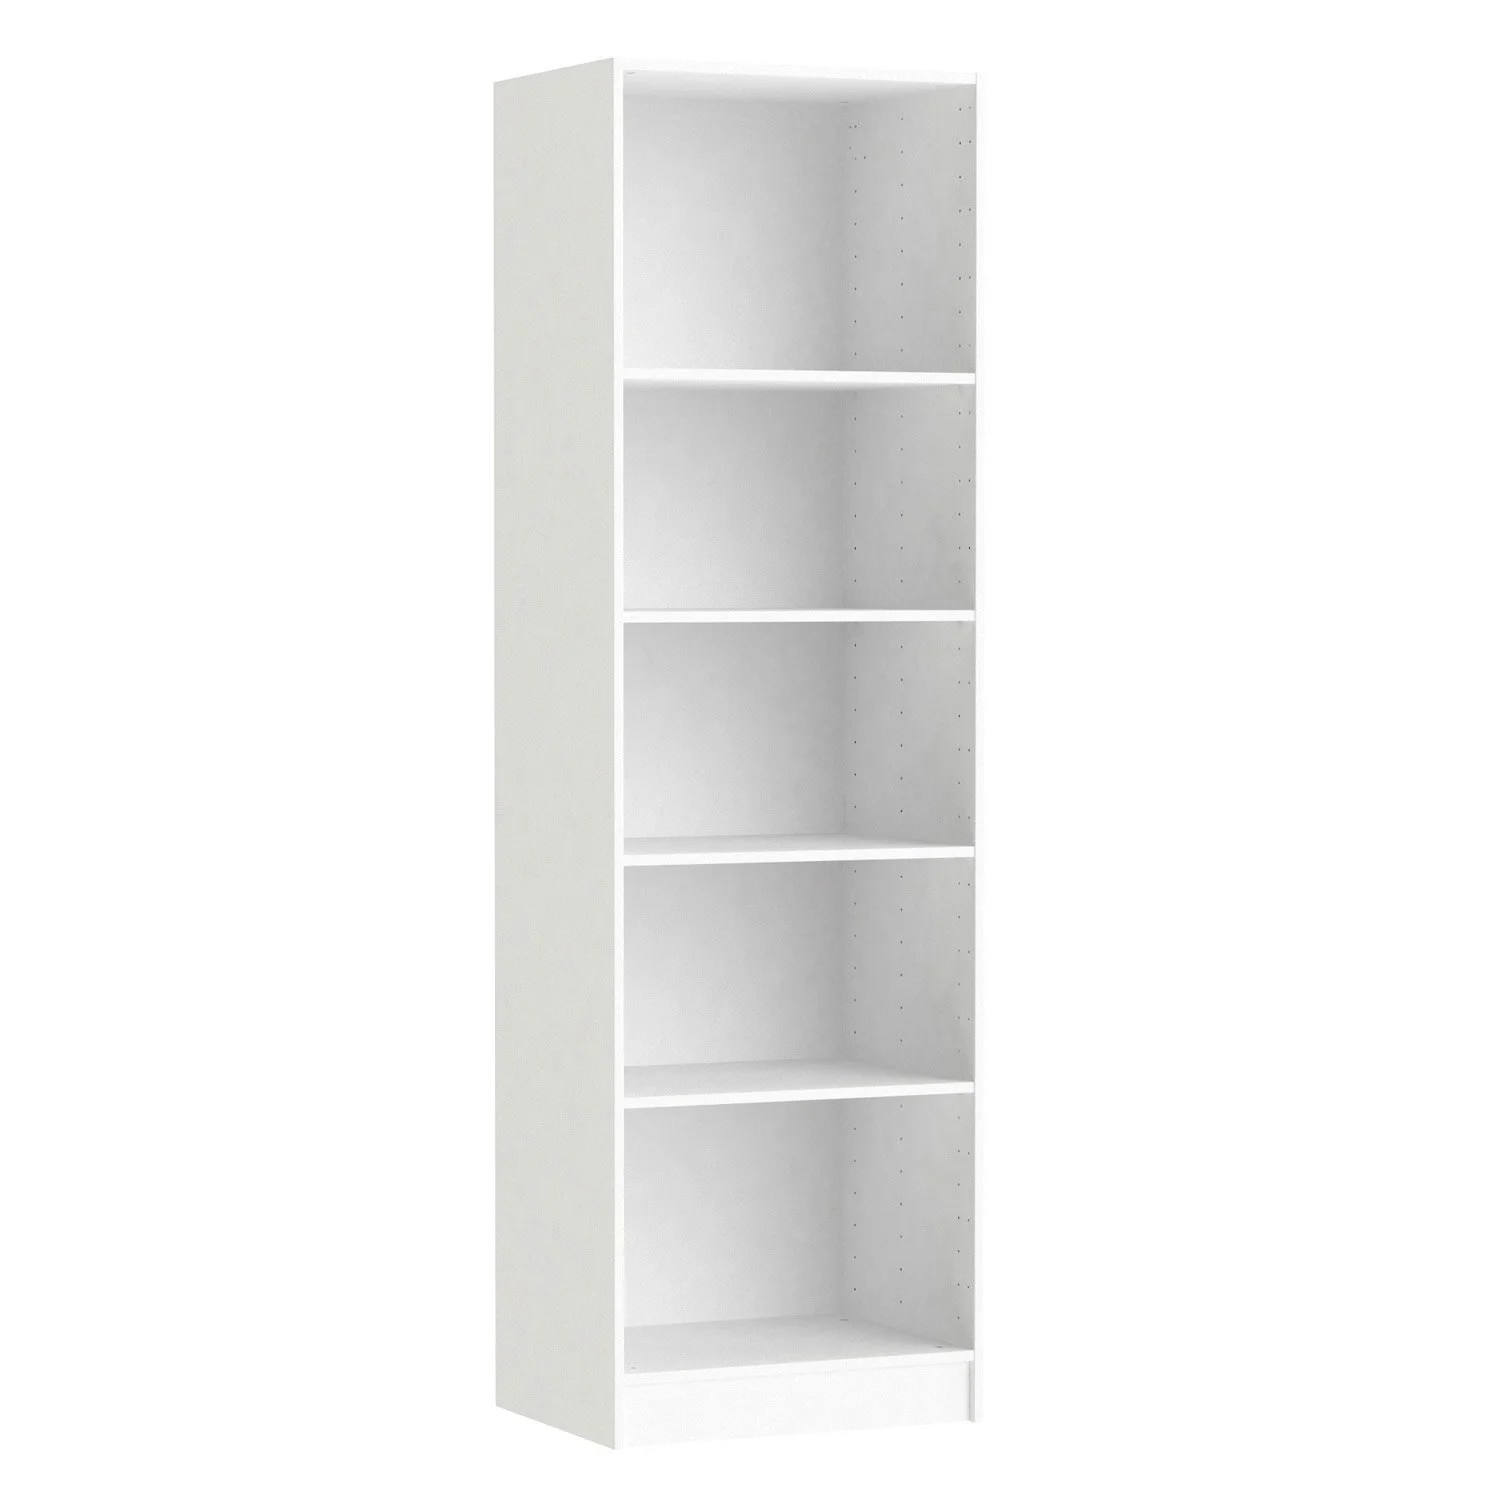 Castorama Caisson Dressing Caisson Spaceo Home Blanc H 200 X L 60 X P 45 Cm